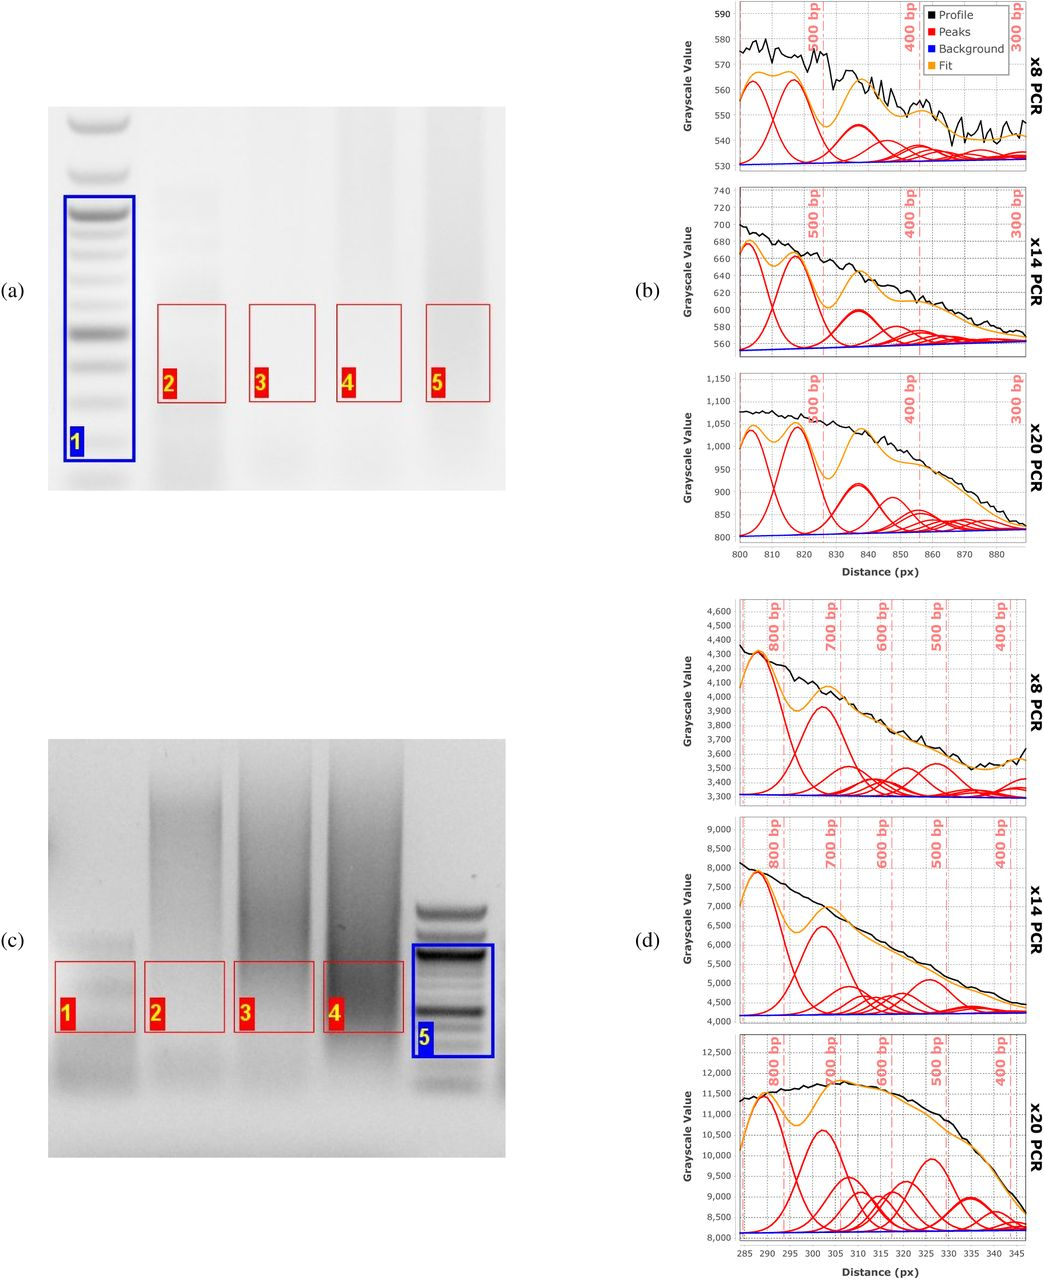 Agarose-gel analysis of tagmentation products of phage- <t>λ</t> DNA analyzed on (a) high-resolution and (c) low-resolution ( i.e ., mini) agarose gels. Size-distribution fits for the high-resolution gel (b) and mini gel (d) of the same tagmented λ -DNA sample subjected to increasing numbers of PCR-amplification cycles (lanes 3-5 in (a), lanes 2-4 in (c)): 8 cycles (top plots), 14 cycles (middle plots), and 20 cycles (bottom plots) in both (b) and (d). Vertical dashed lines (light red in (b), (d)) give the positions of maxima in the discrete molecular-weight ladder (blue ROI in (b), (b)).